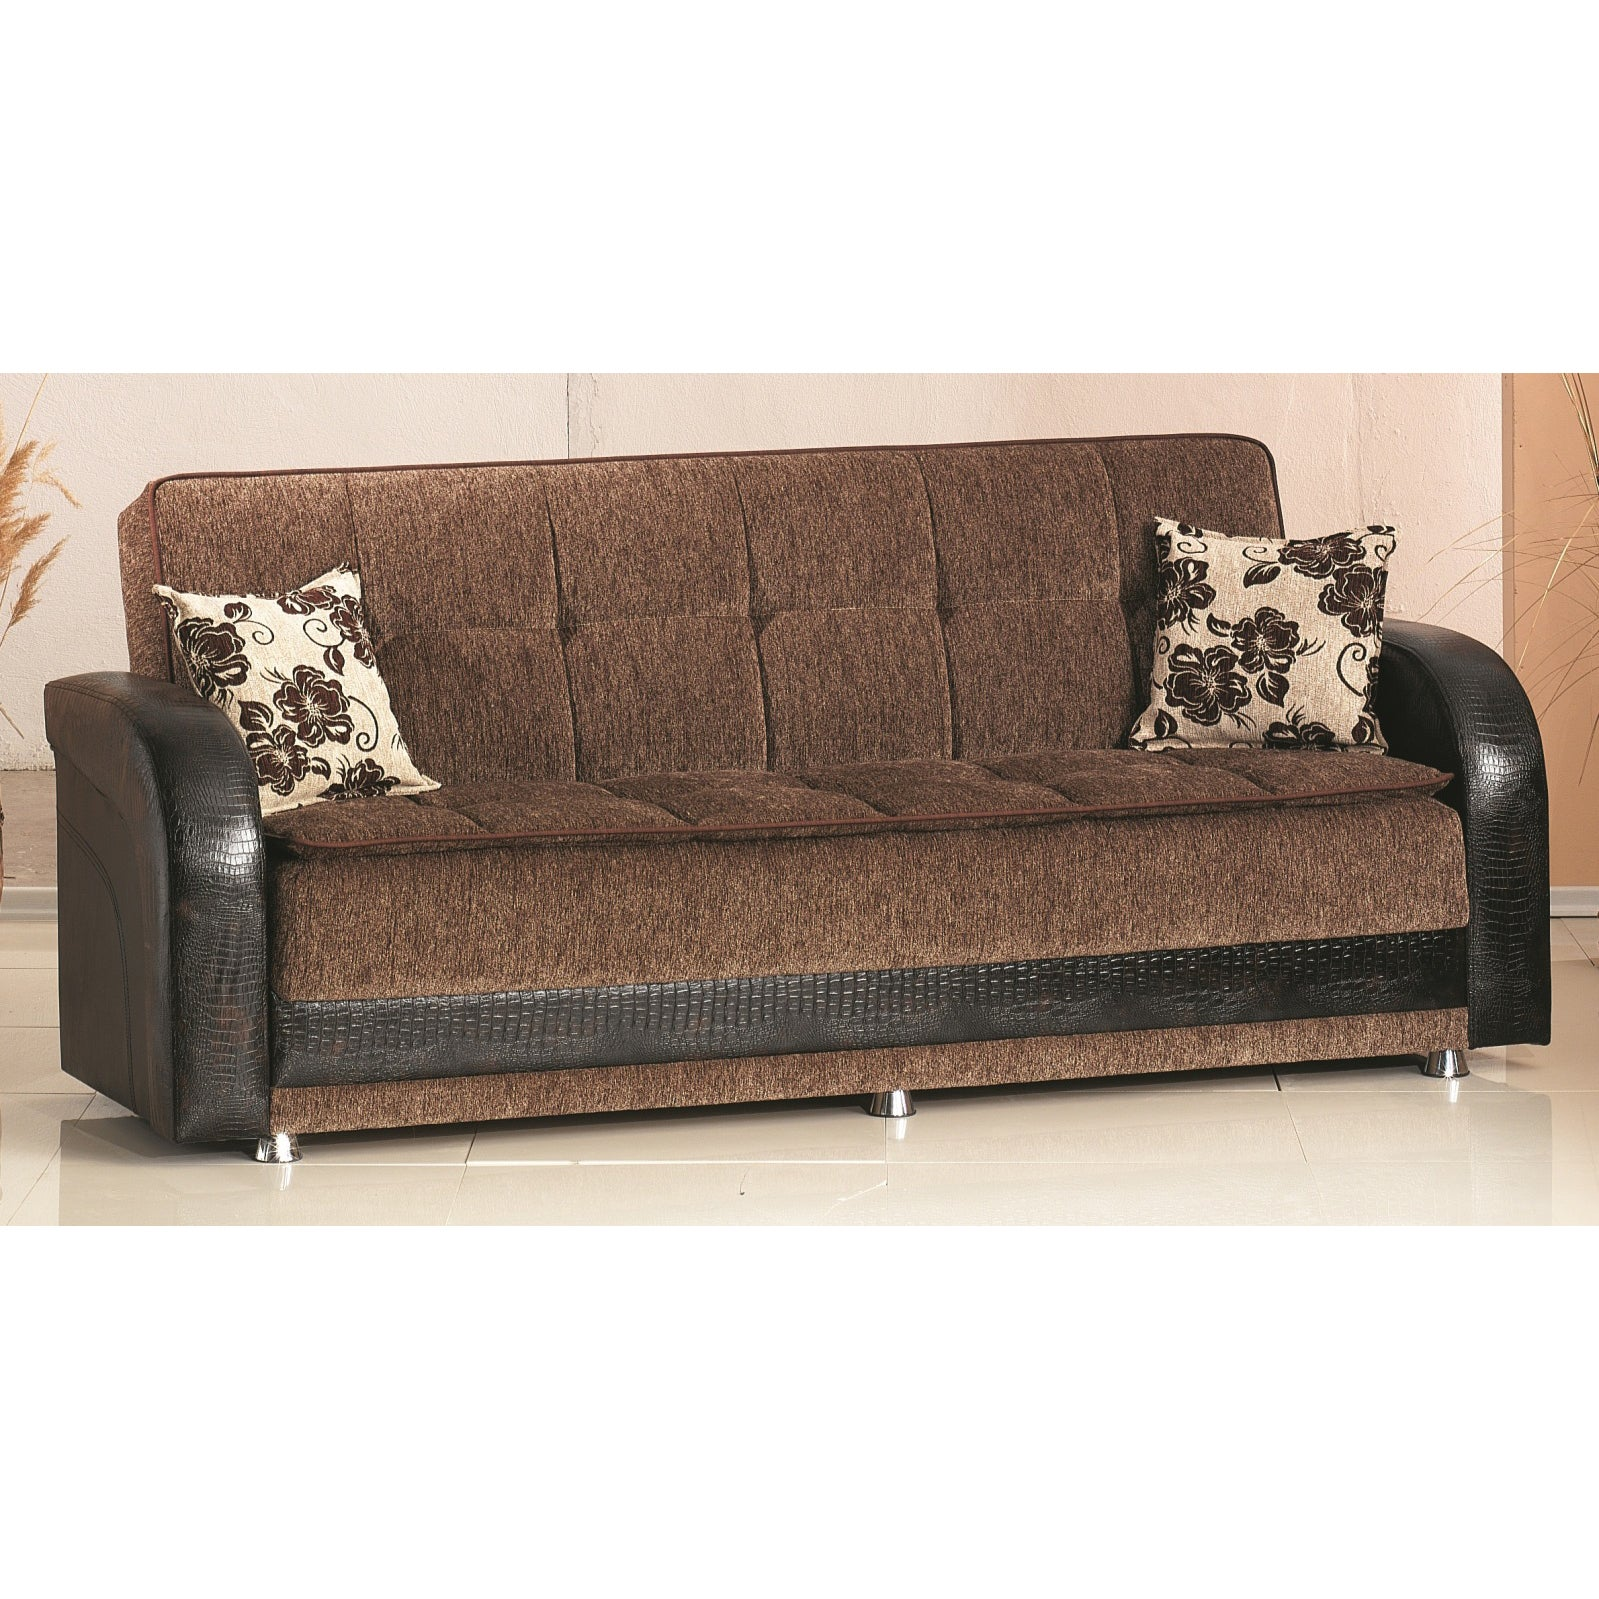 'Utica' Brown Bicast Leather and Fabric Sofa Bed at Sears.com